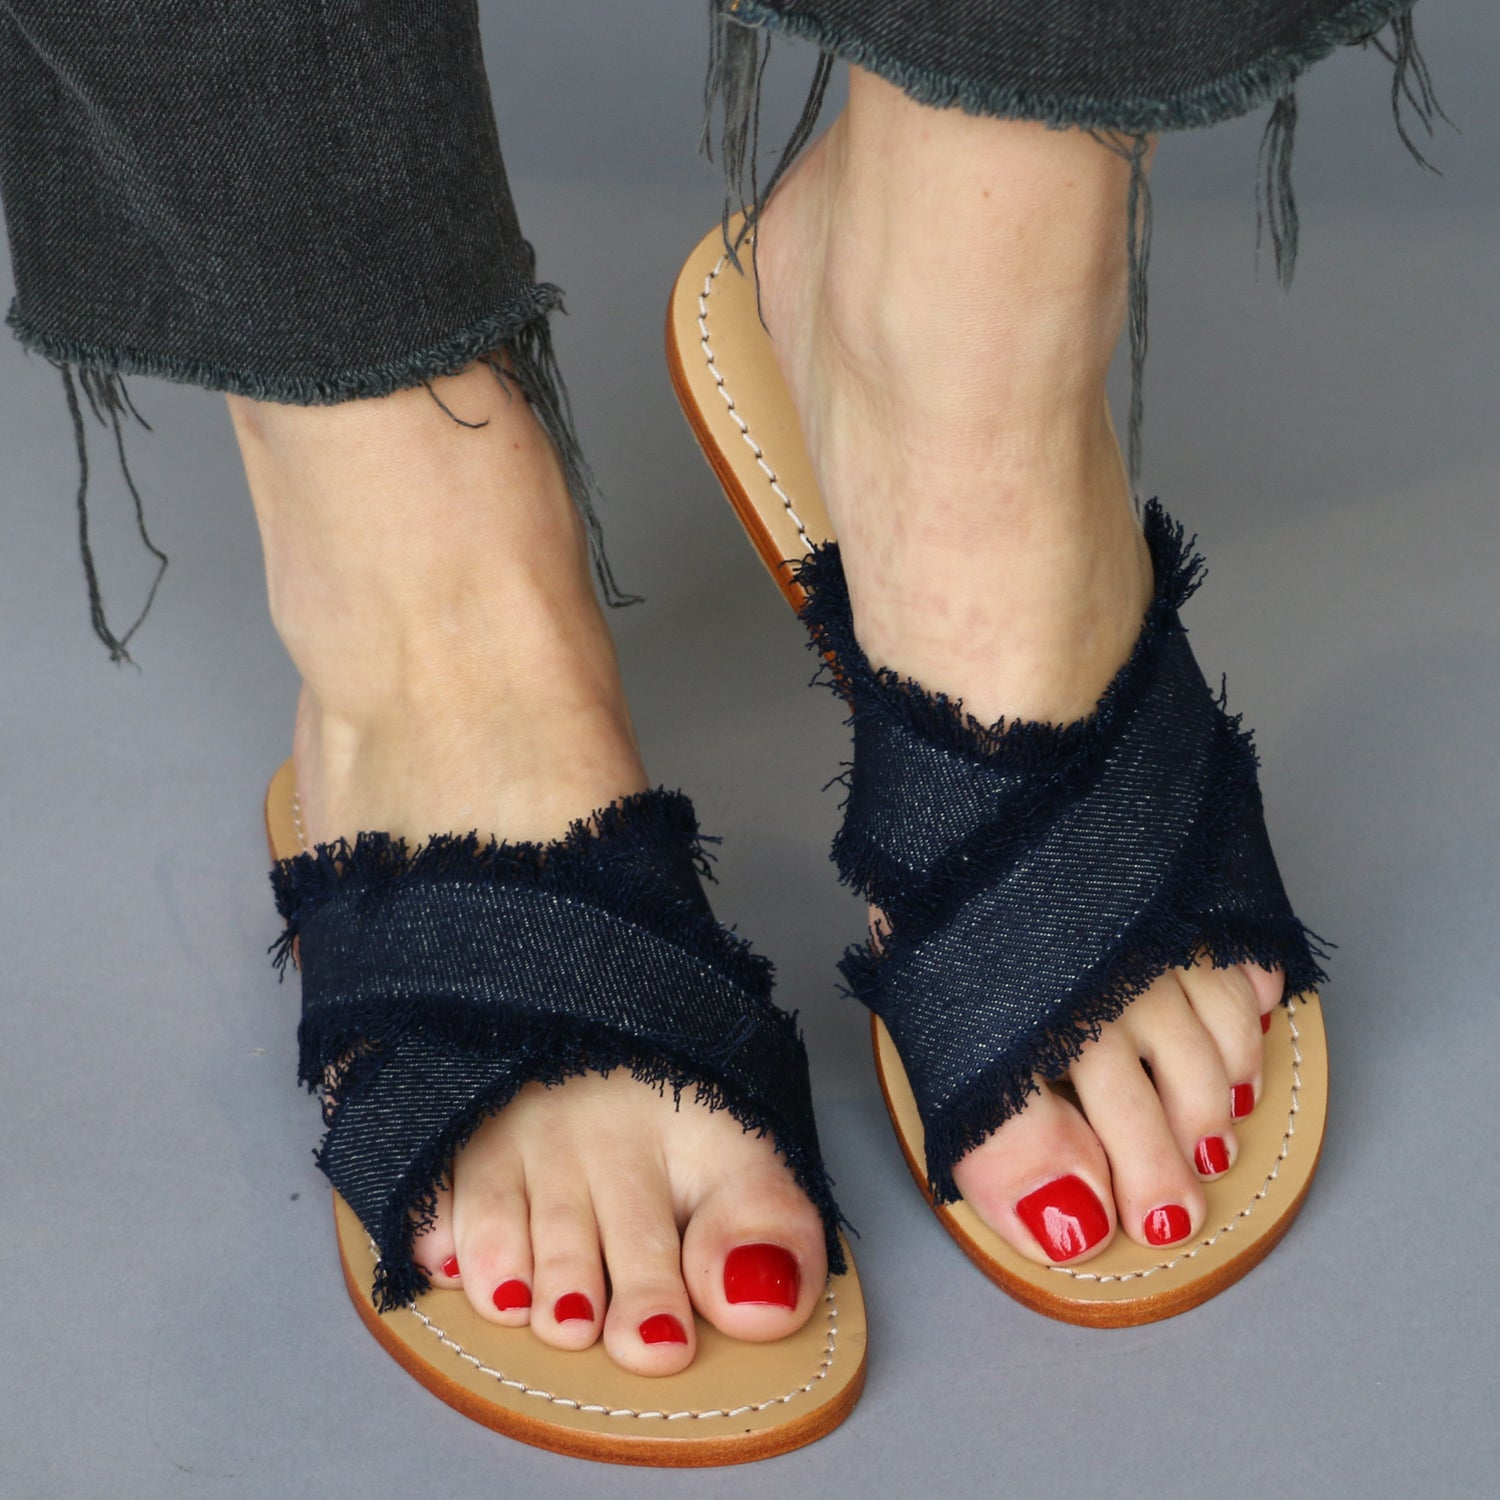 Beverly Hills - Mystique Sandals